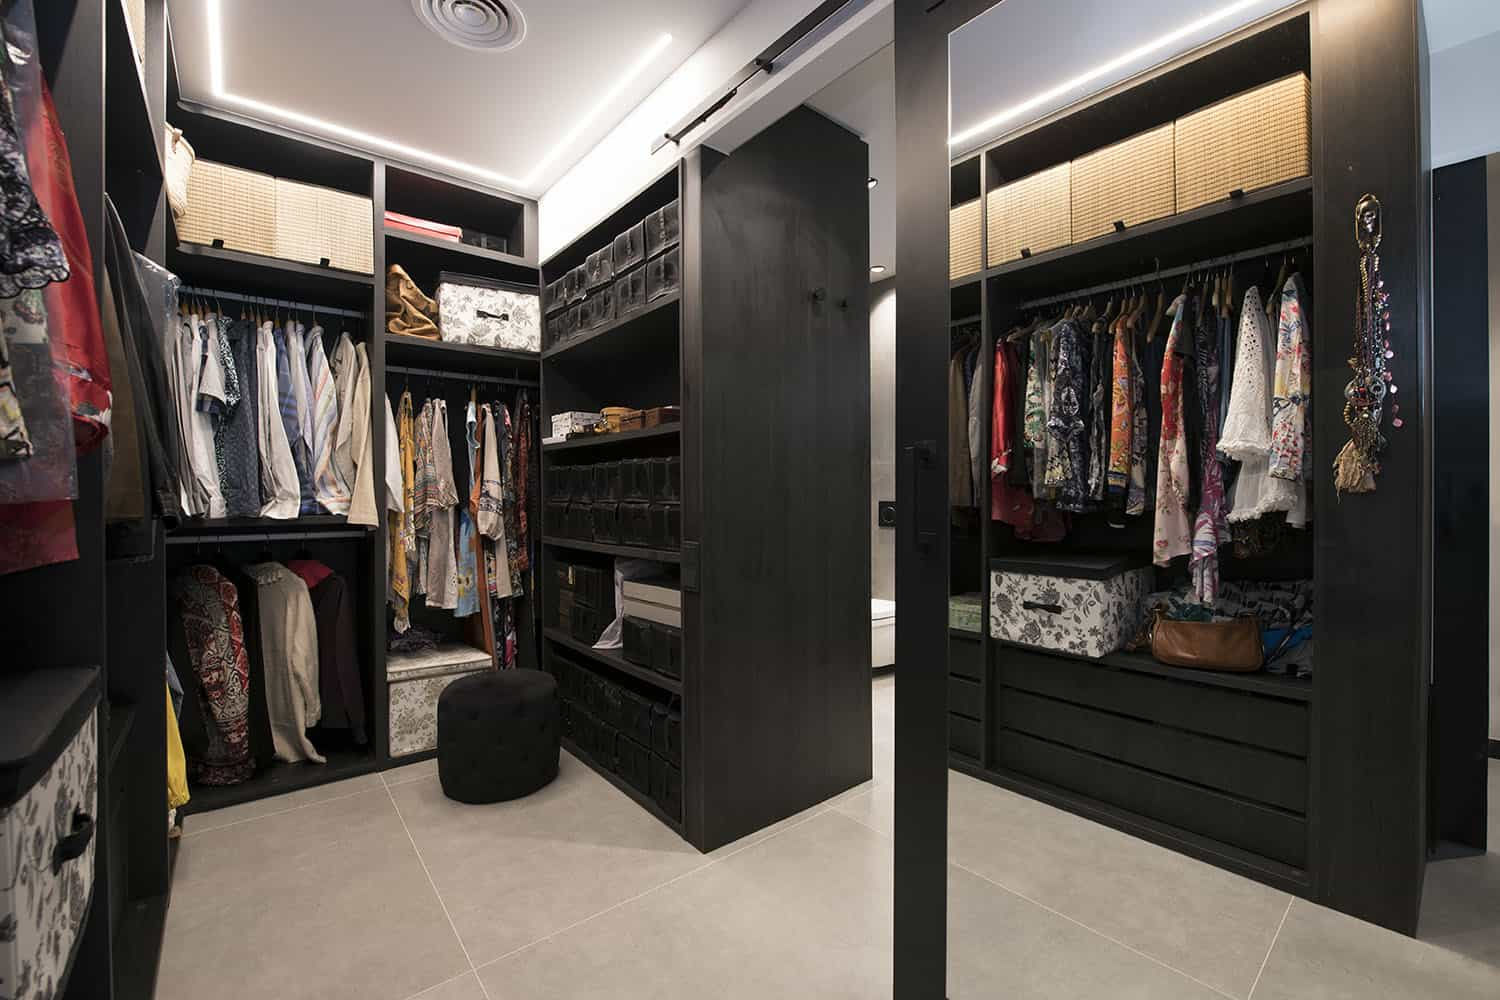 The closet is done in neutrals but the furniture is very dark, there's enough light still